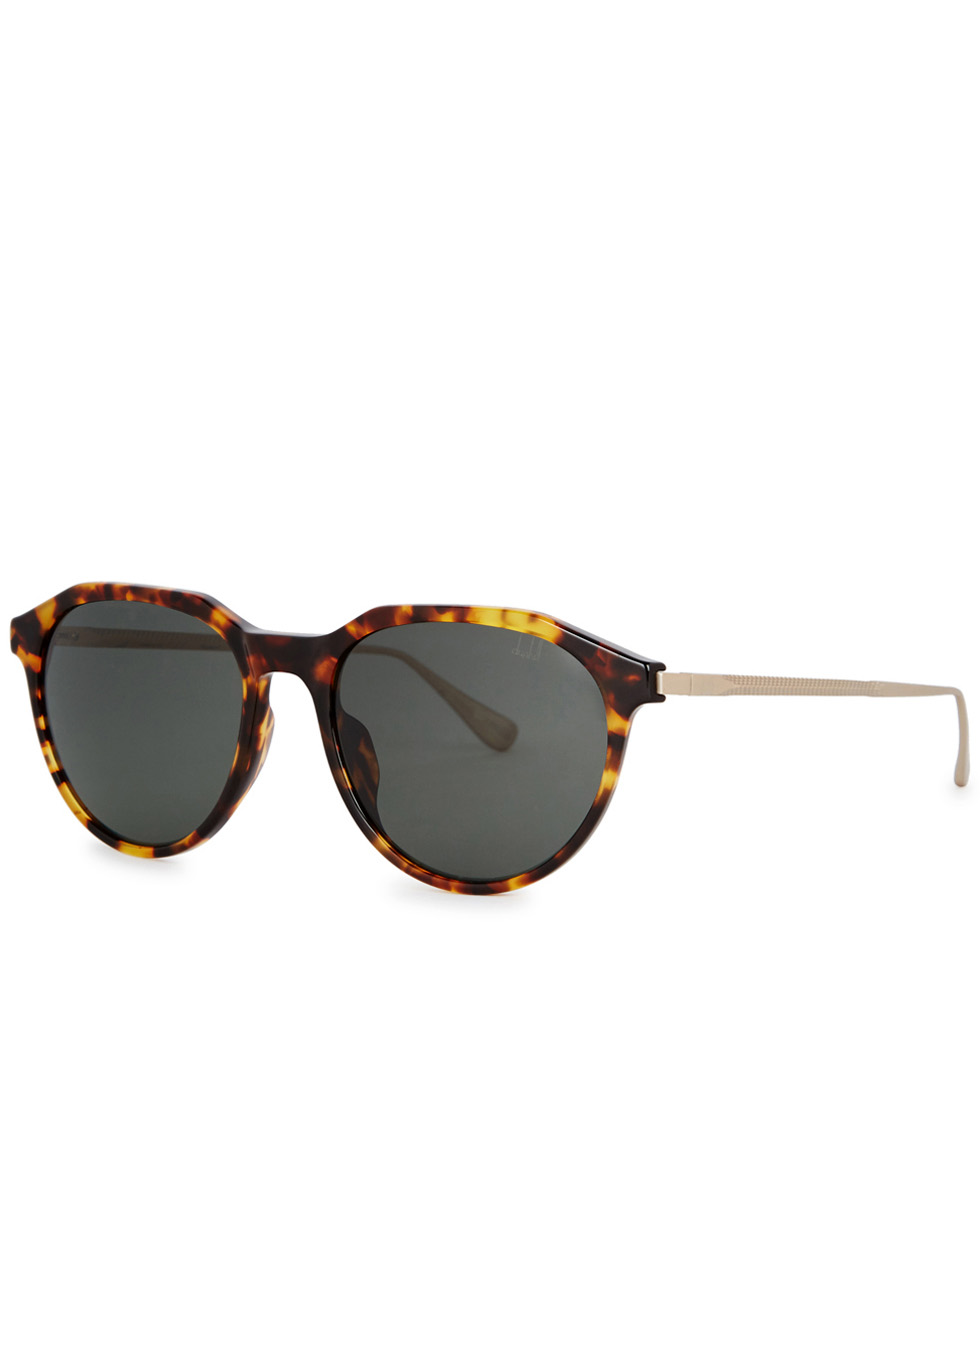 DUNHILL LONDON Tortoiseshell Oval-Frame Sunglasses in Havana